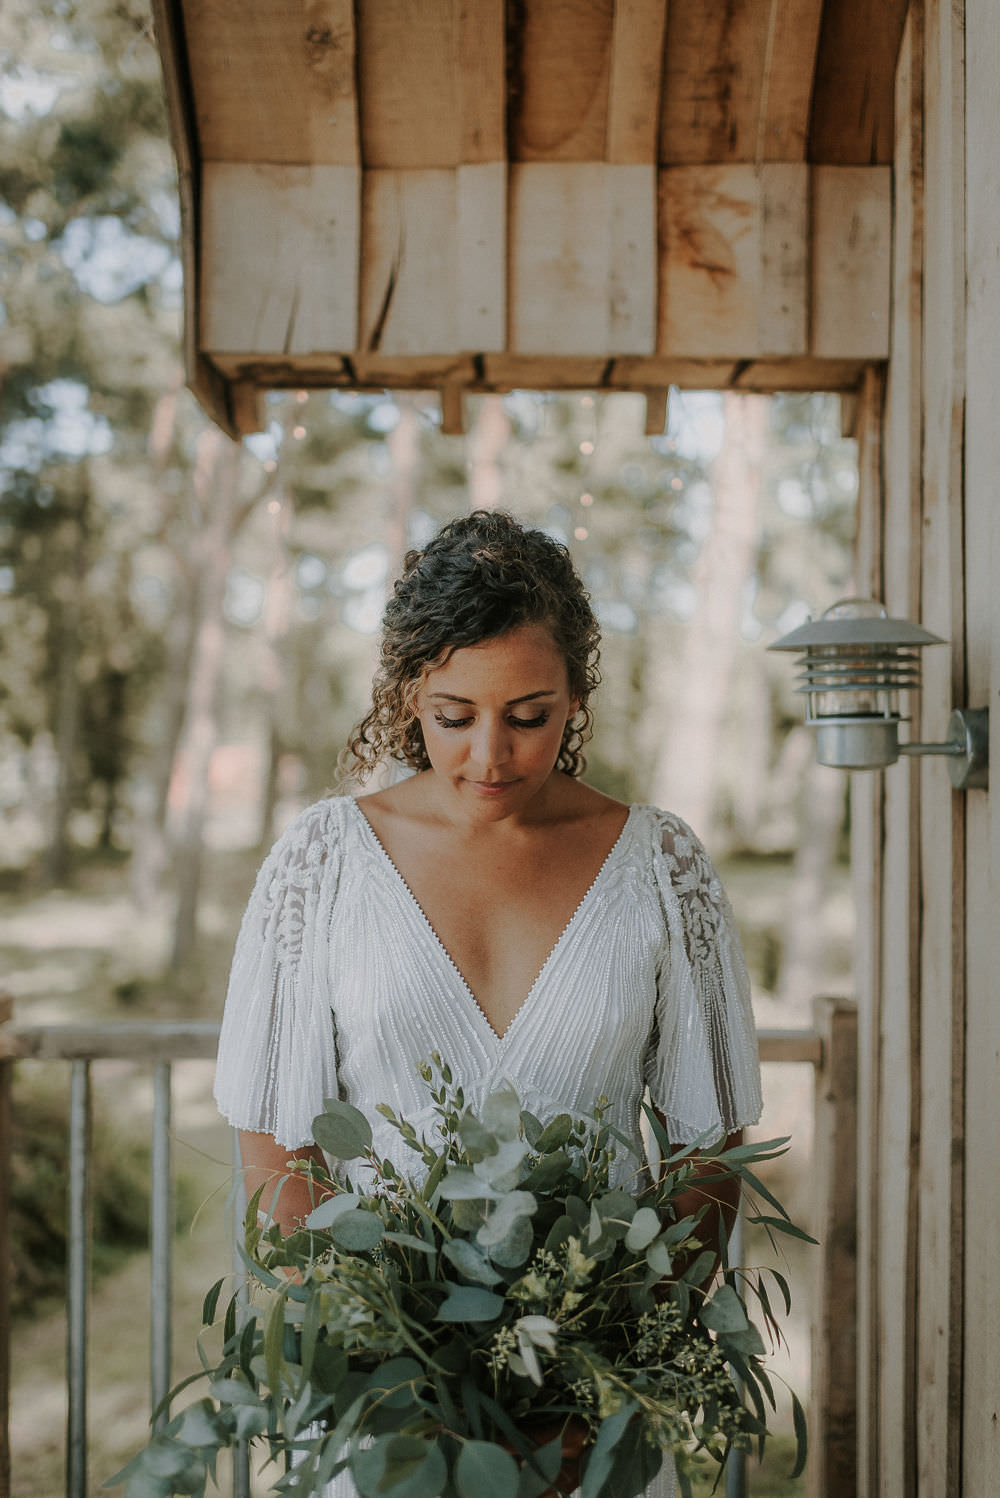 Bride Bridal Dress Gown Rosa Clara Beaded Sleeves Greenery Foliage Bouquet Flowers Happy Valley Wedding Alice Cunliffe Photography